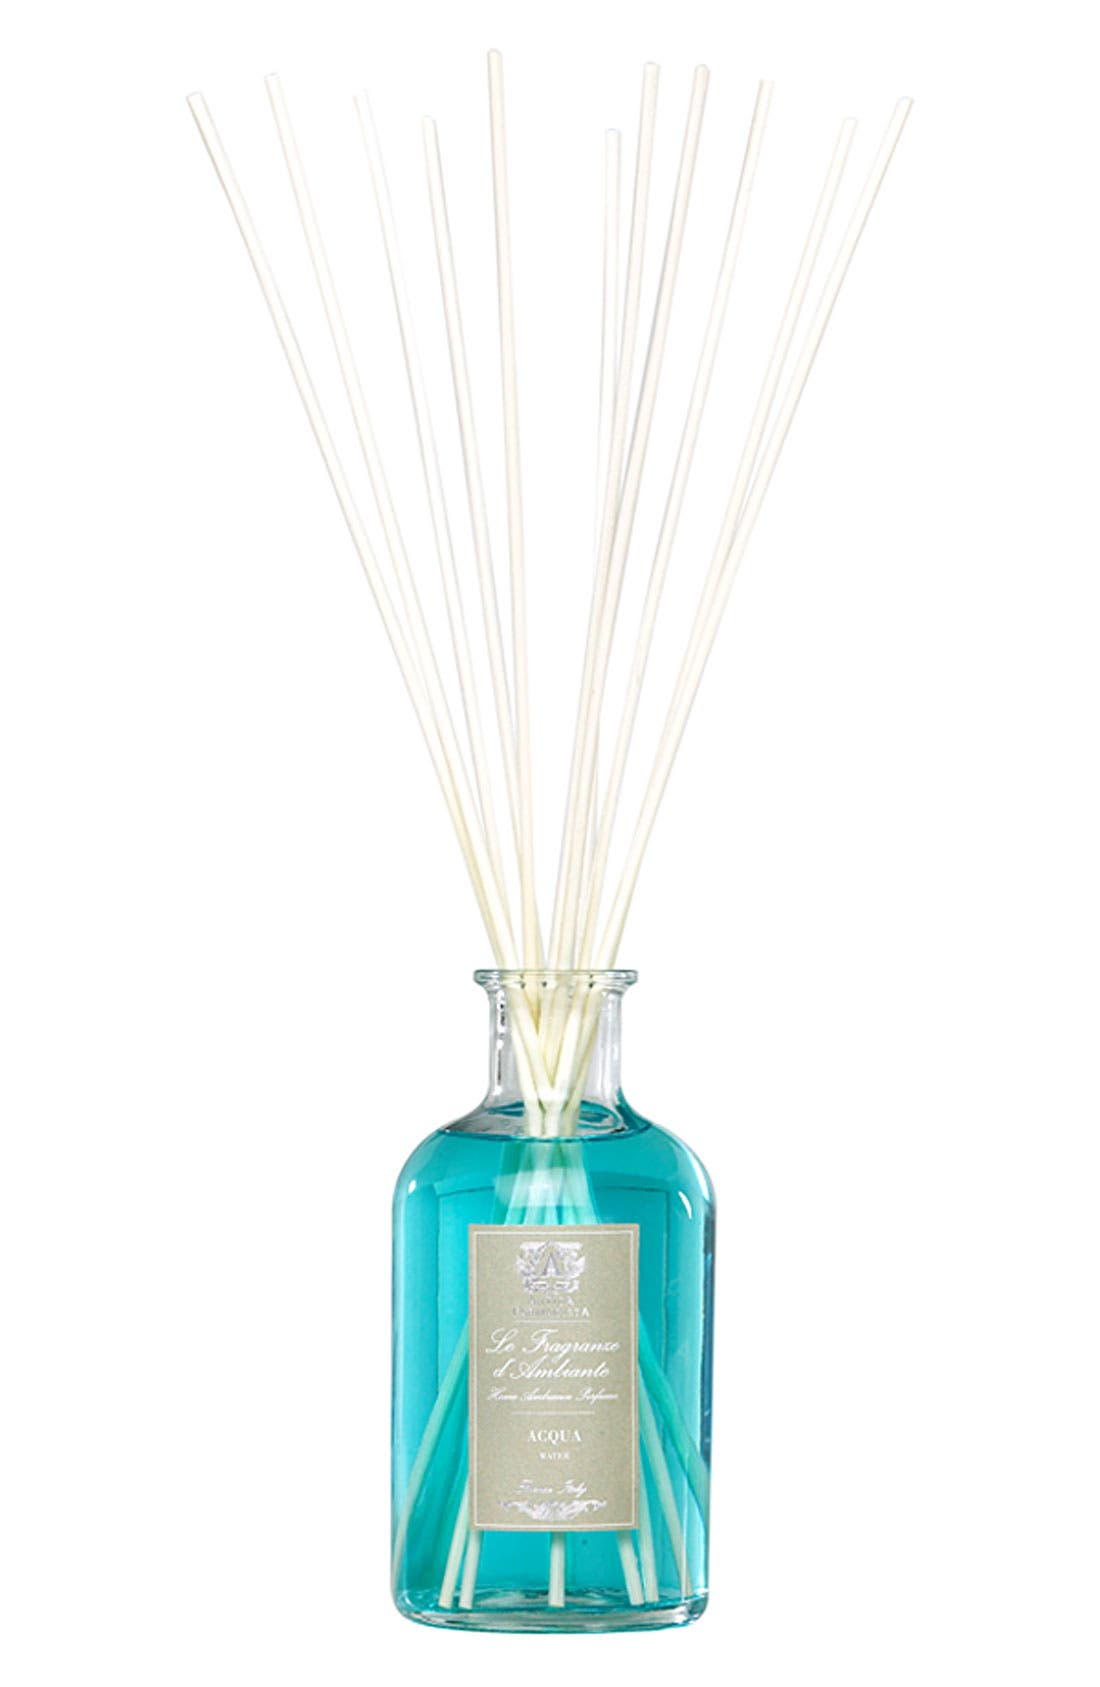 Alternate Image 1 Selected - Antica Farmacista 'Acqua' Home Ambiance Perfume